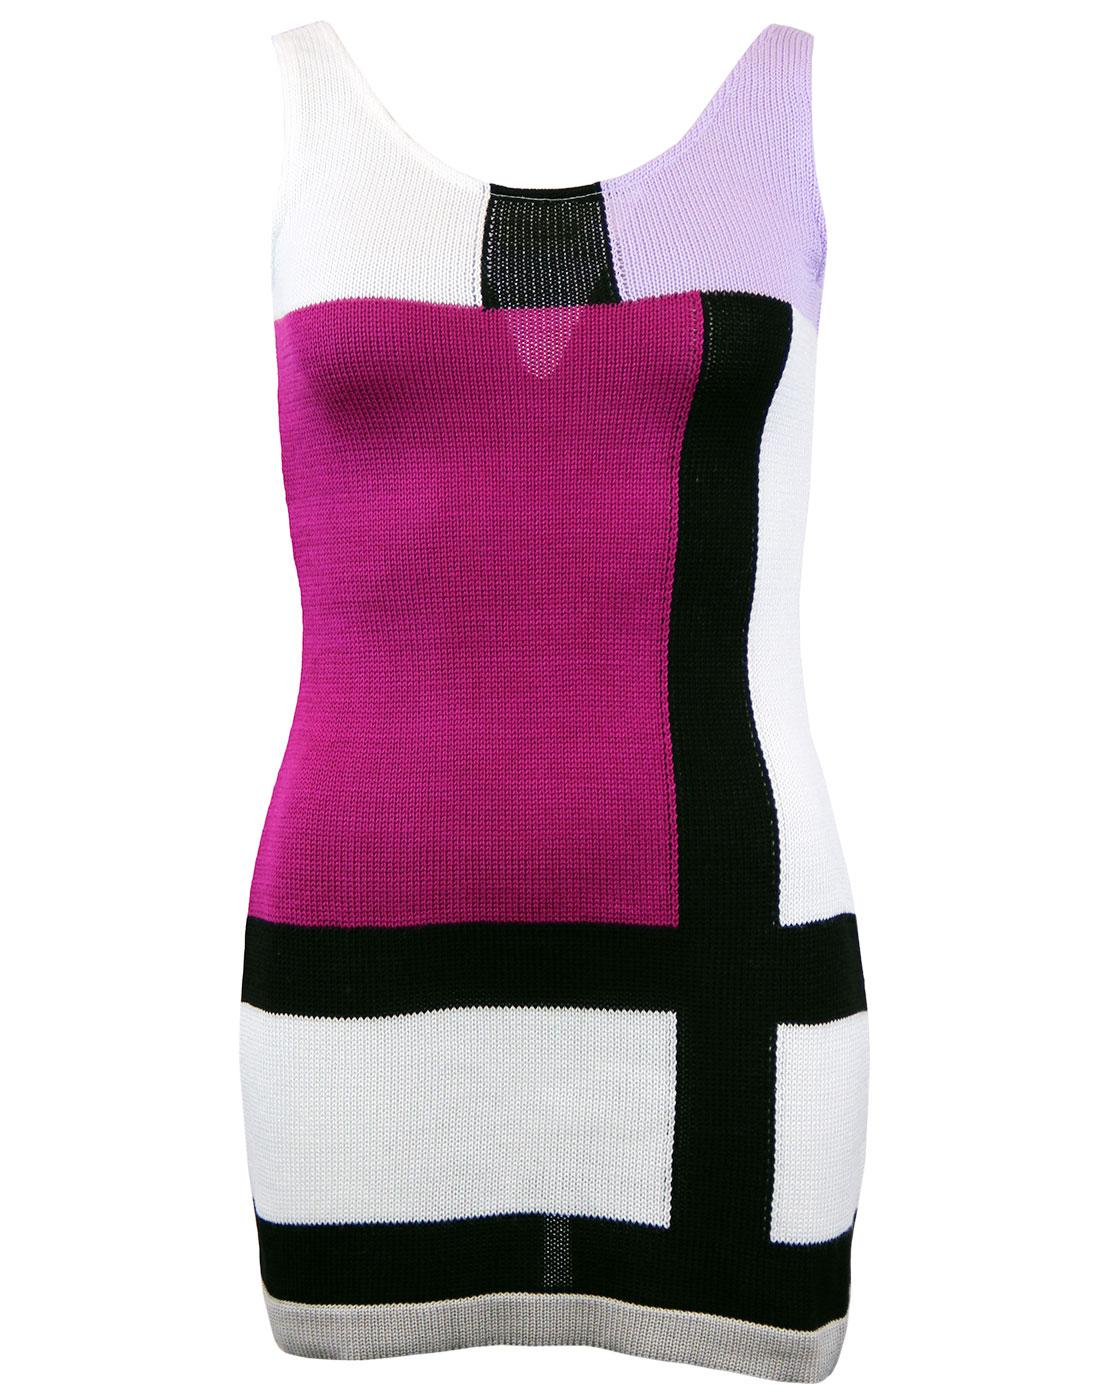 'The Buzz' - Retro Mod Sixties Dress by MADCAP (M)